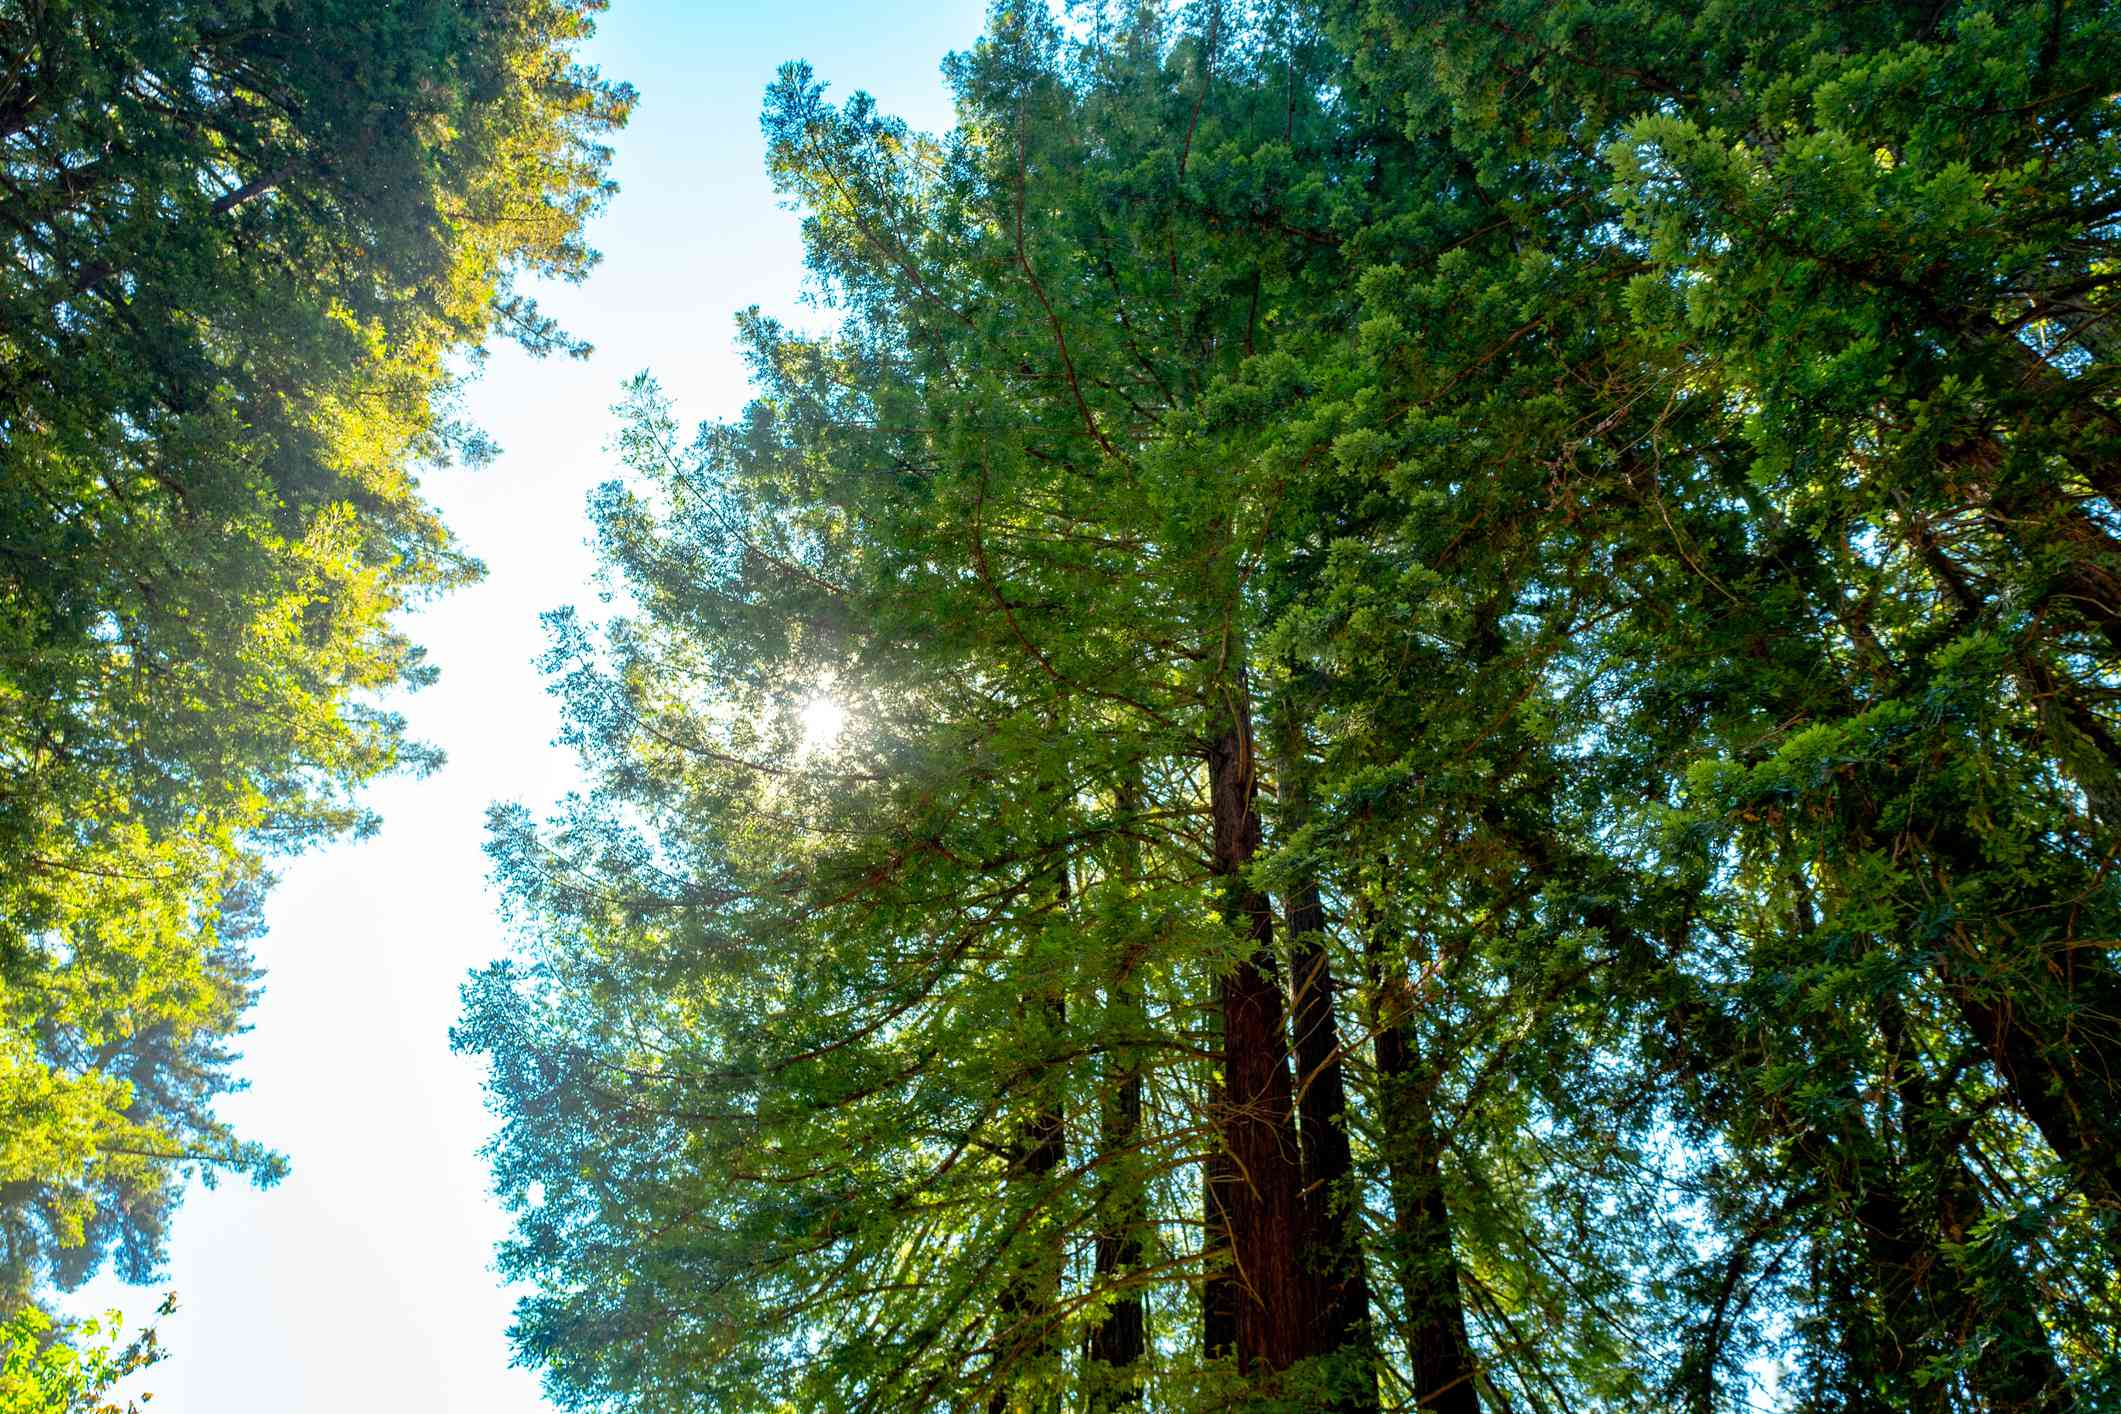 Low-angle view of the tree canopy of a stand of Coast Redwood trees on a sunny day outdoors at Redwoods Regional Park, an East Bay Regional Park in Oakland, California